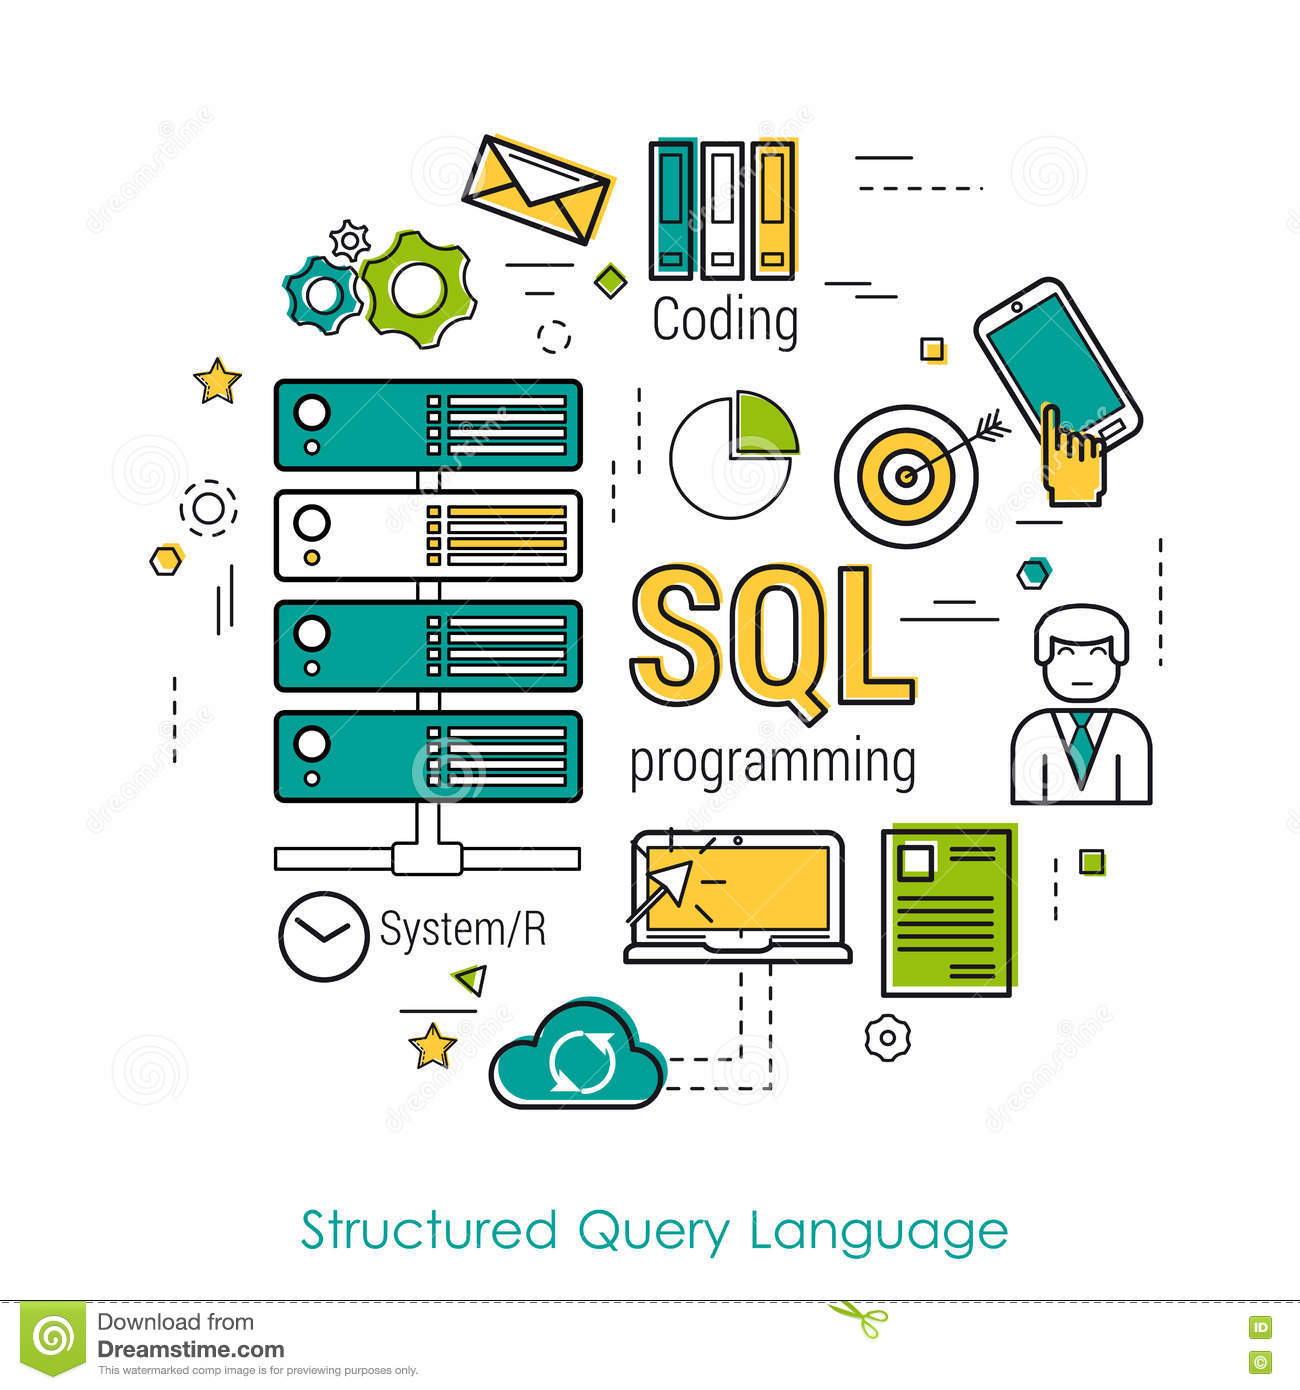 structure query language Structured query language database queries are usually constructed using sql, or structured query language sql is a standard computer language for accessing and manipulating a database.